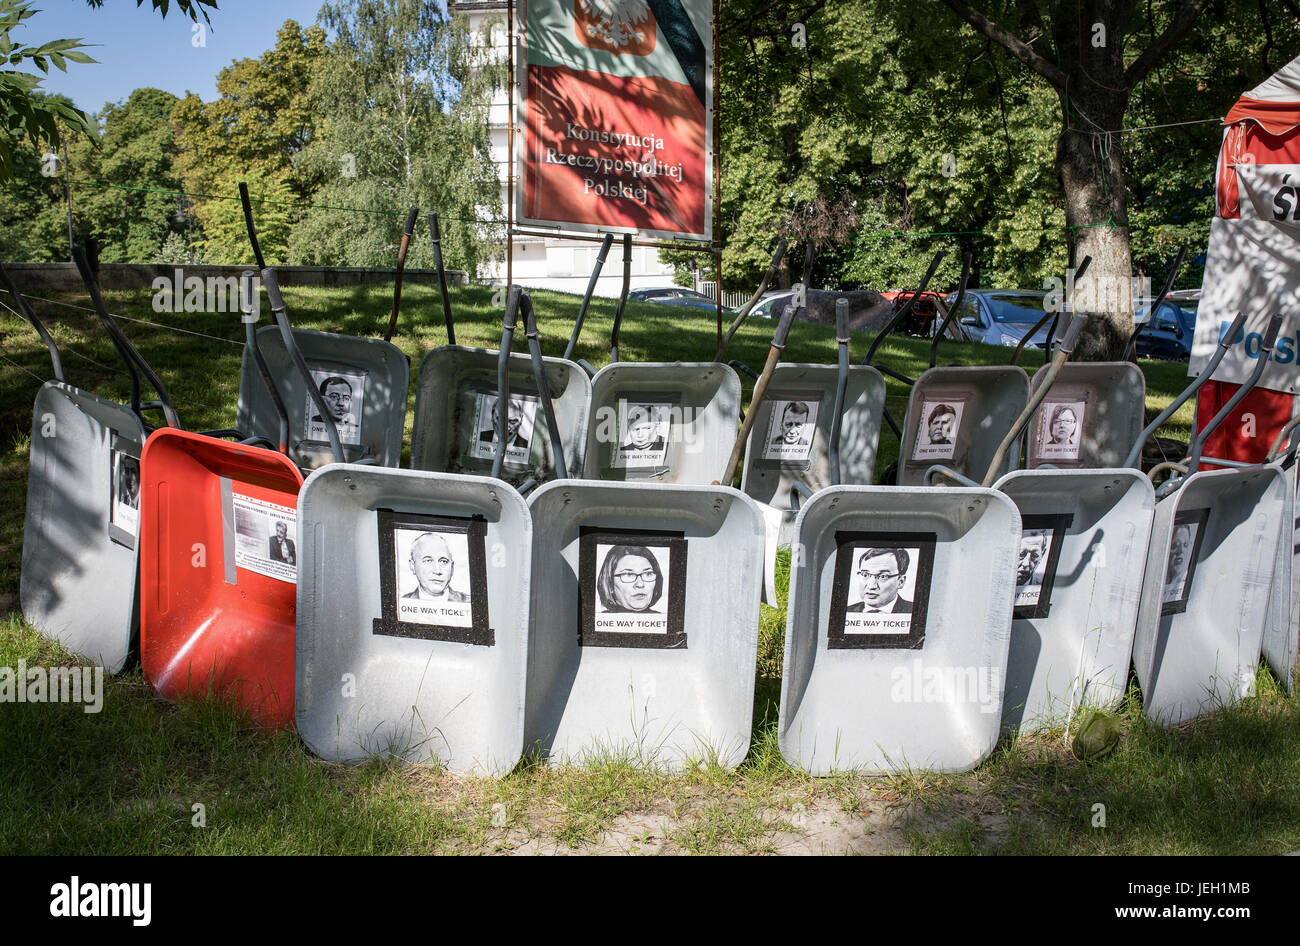 Protest against the authoritarian government in Poland, Warsaw, Wiejska street, close to Parliament building, wheelbarrows - Stock Image